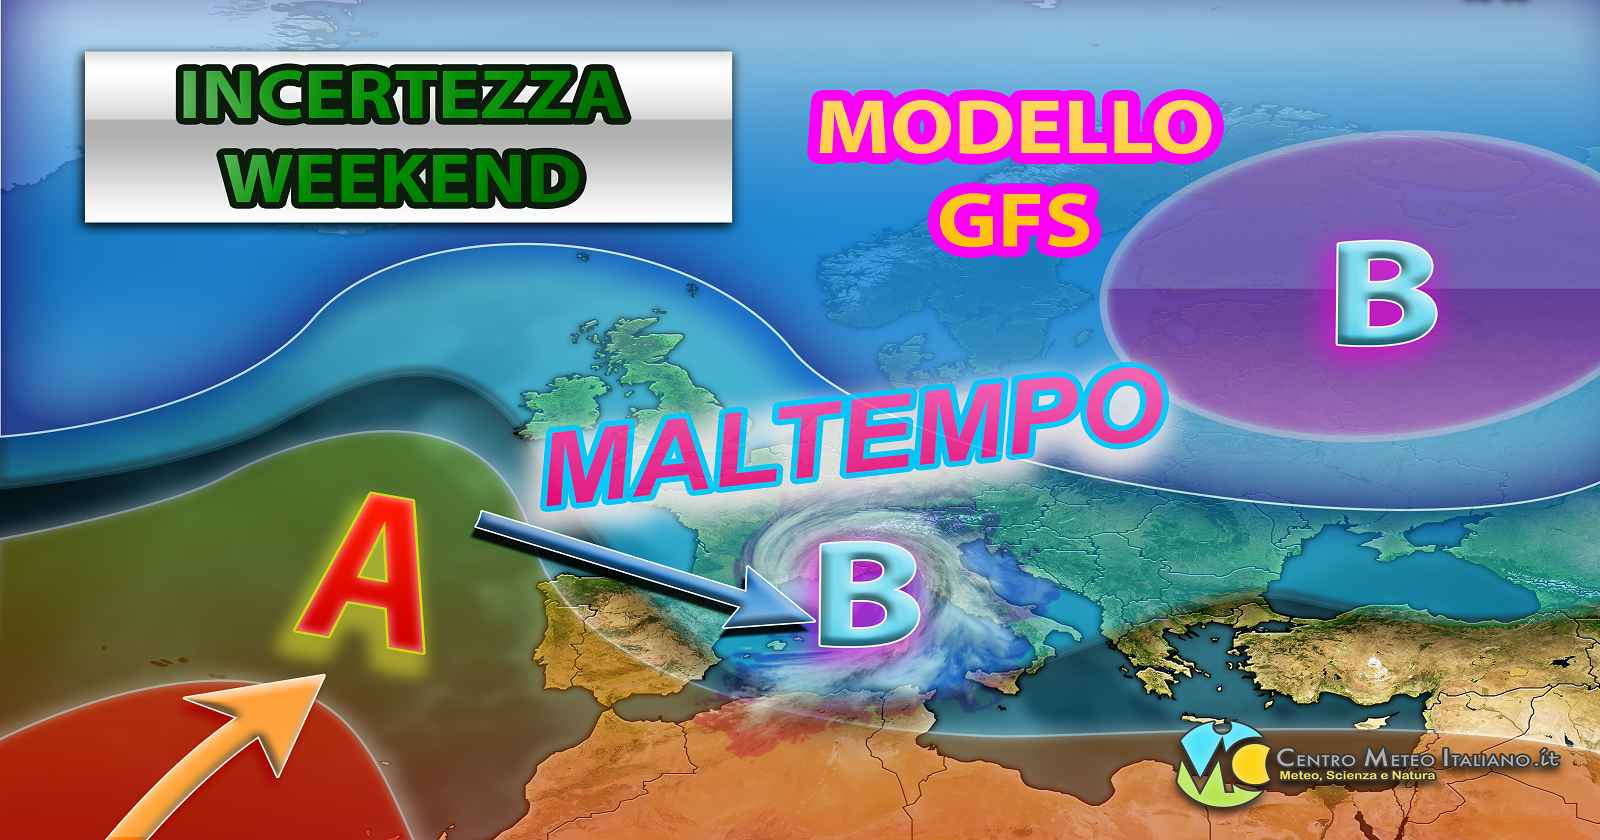 Previsioni meteo per il weekend all'insegna del maltempo in Italia